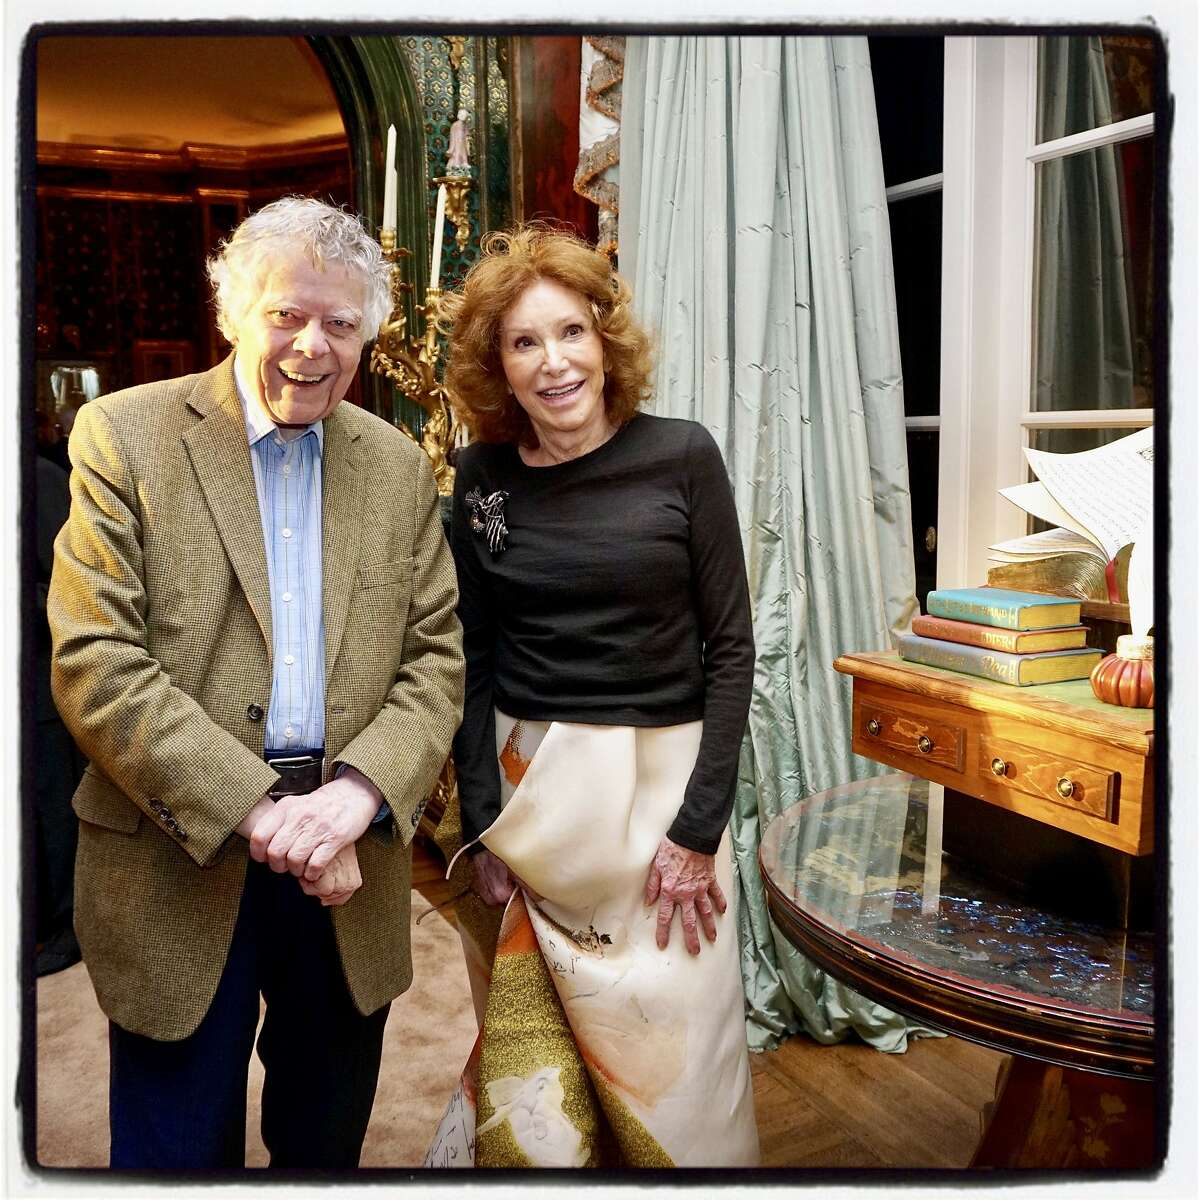 Ann Getty hosted an 85th birthday in honor of her husband, philanthropist-composer, Gordon Getty, and their granddaughter, Ivy Getty who shares her grandfather's Dec. 20 natal day. Dec. 16, 2018.